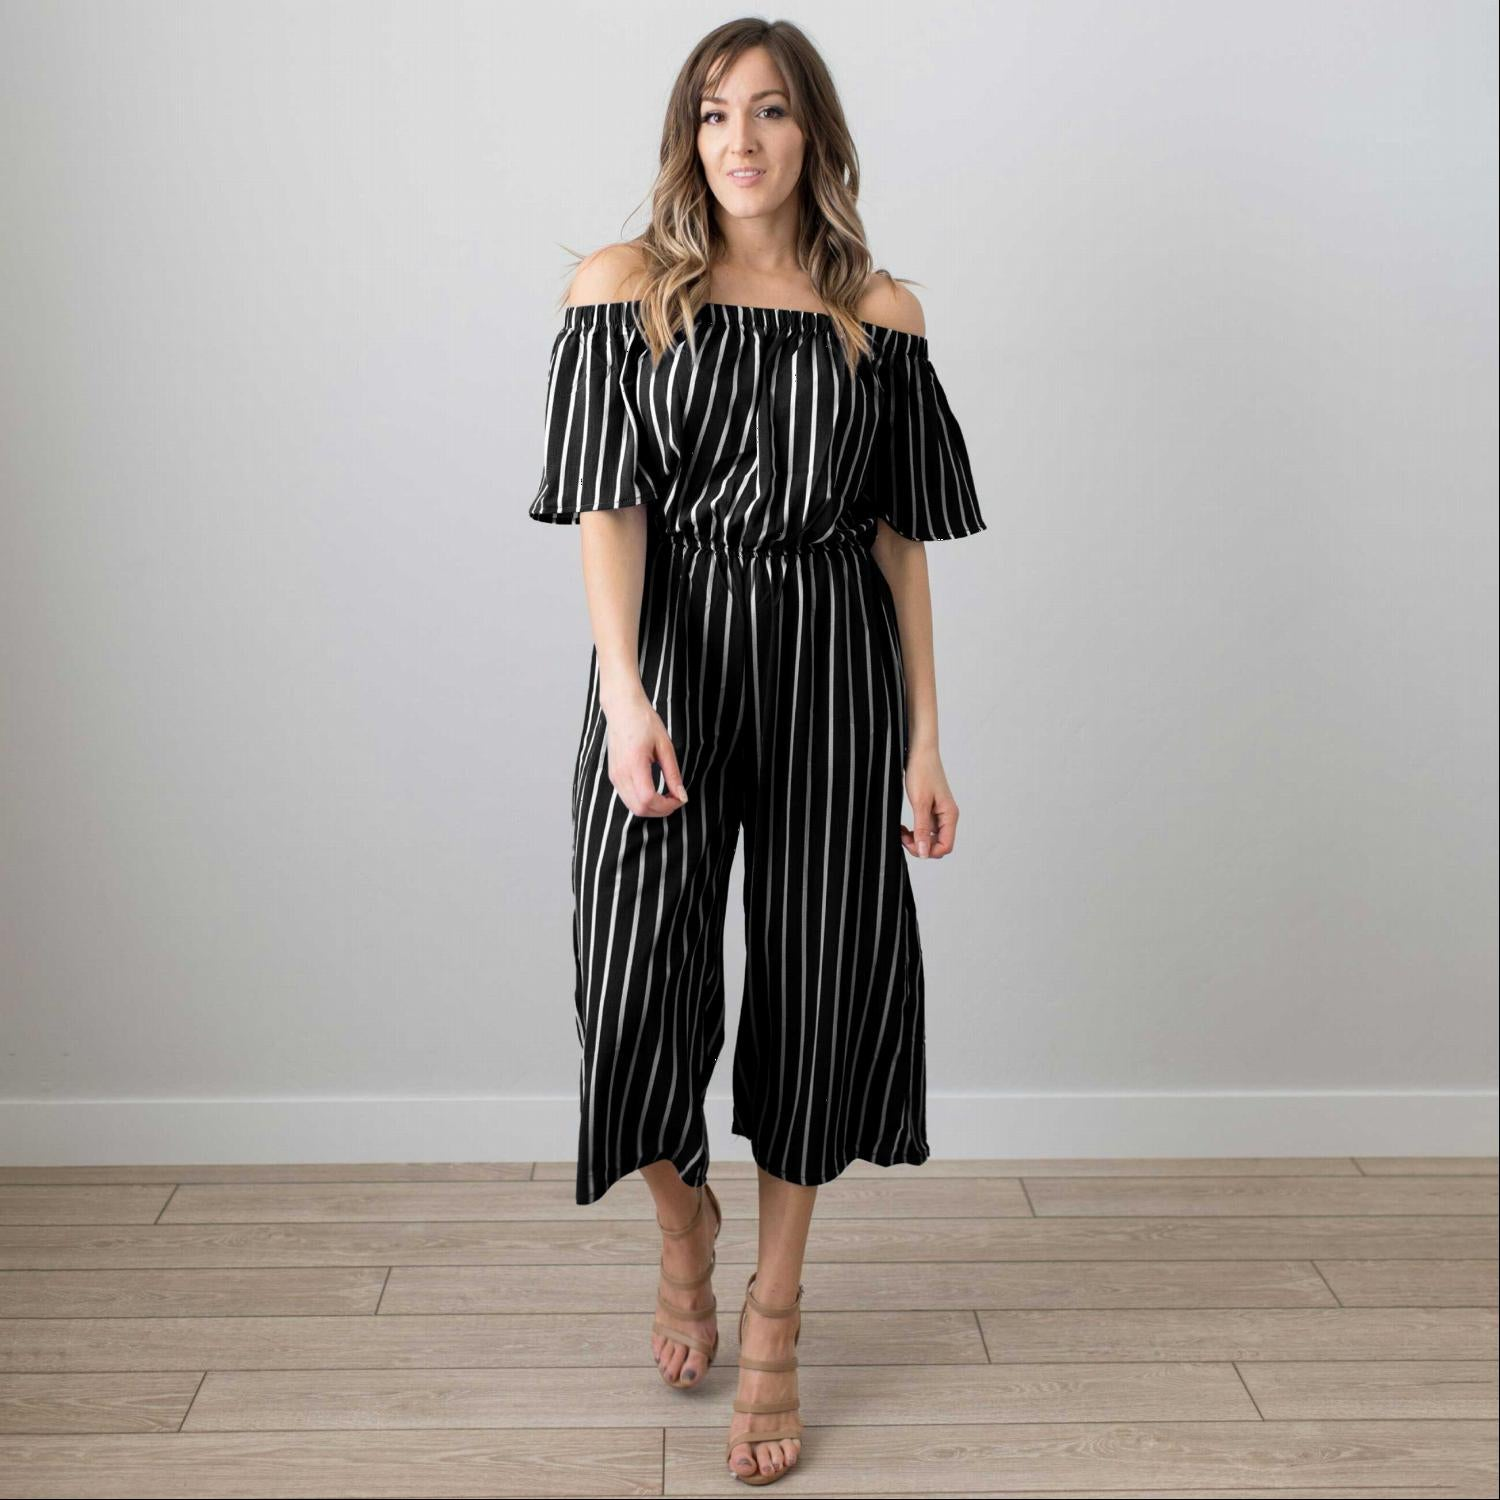 Black Women Jumpsuit Romper Off-Shoulder Playsuit Striped Capri Trousers Outfit USA